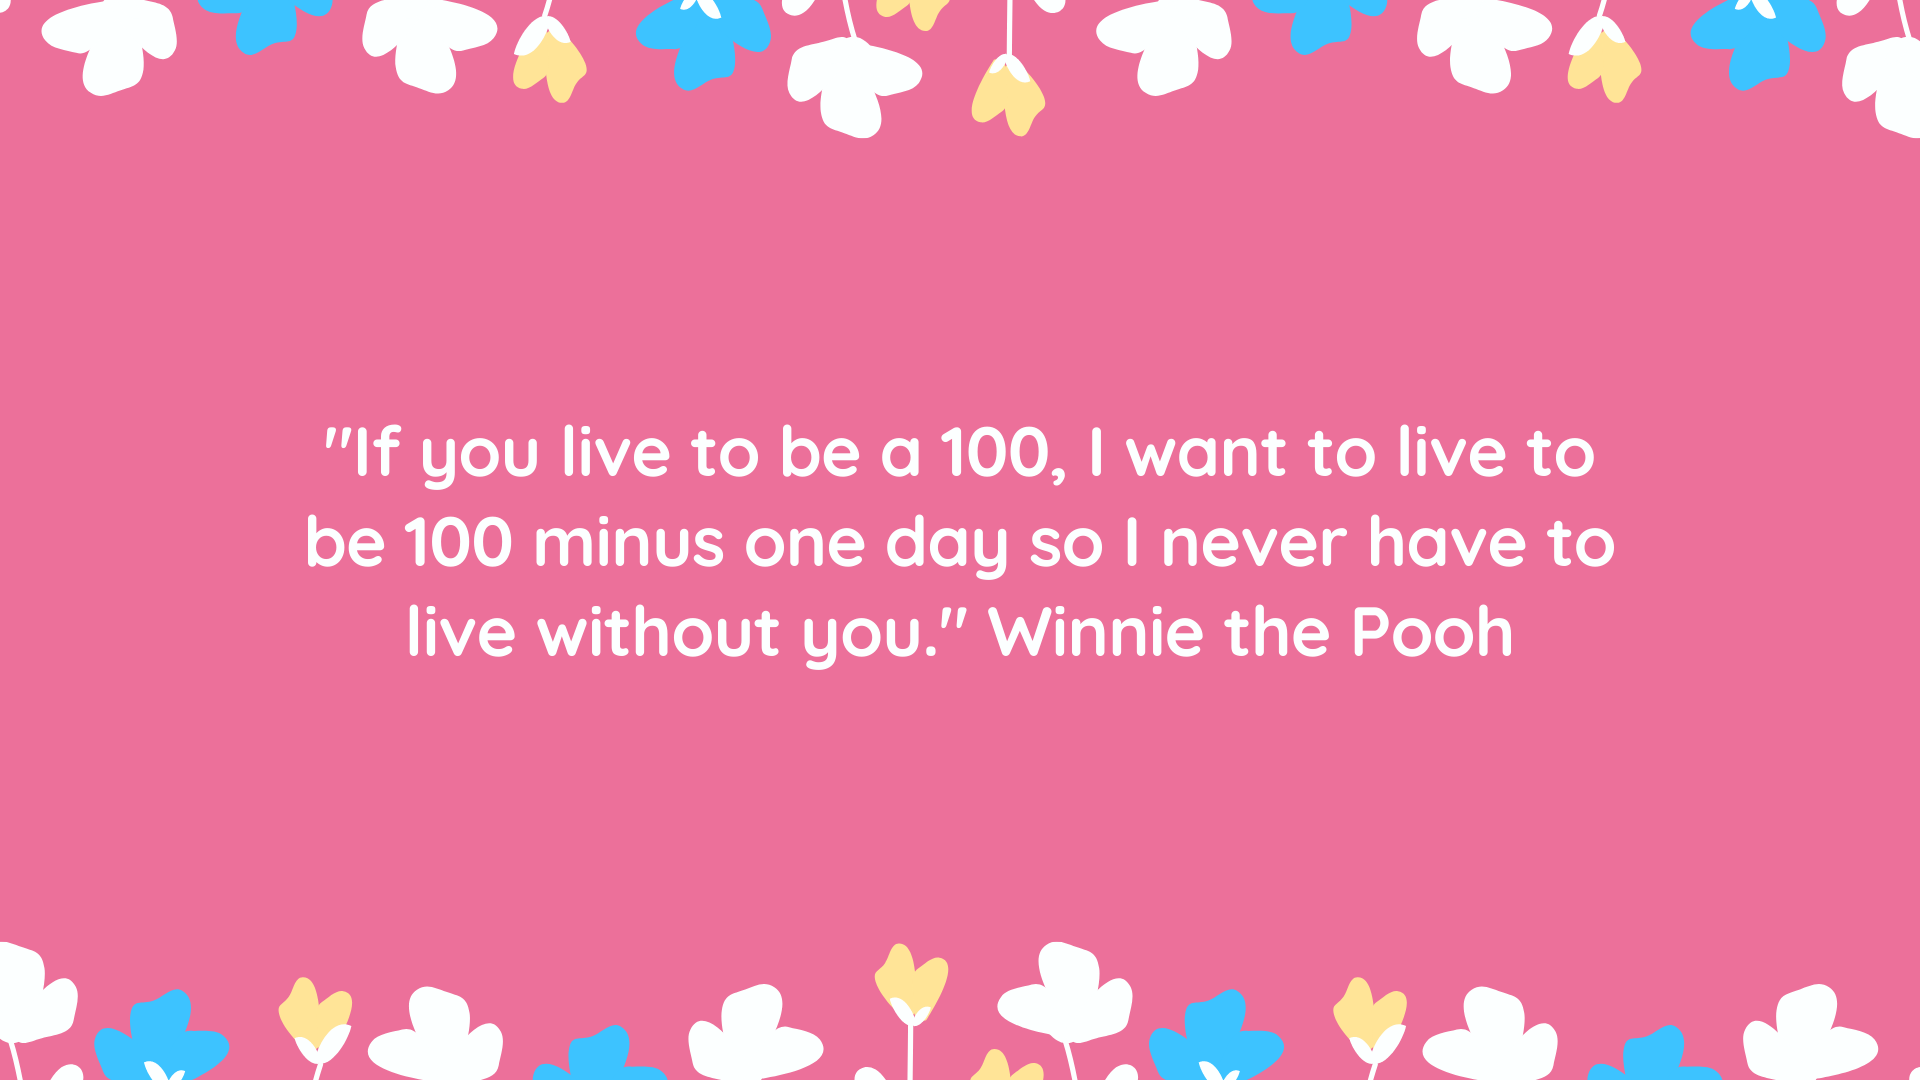 """If you live to be a 100, I want to live to be 100 minus one day so I never have to live without you."" Winnie the Pooh"